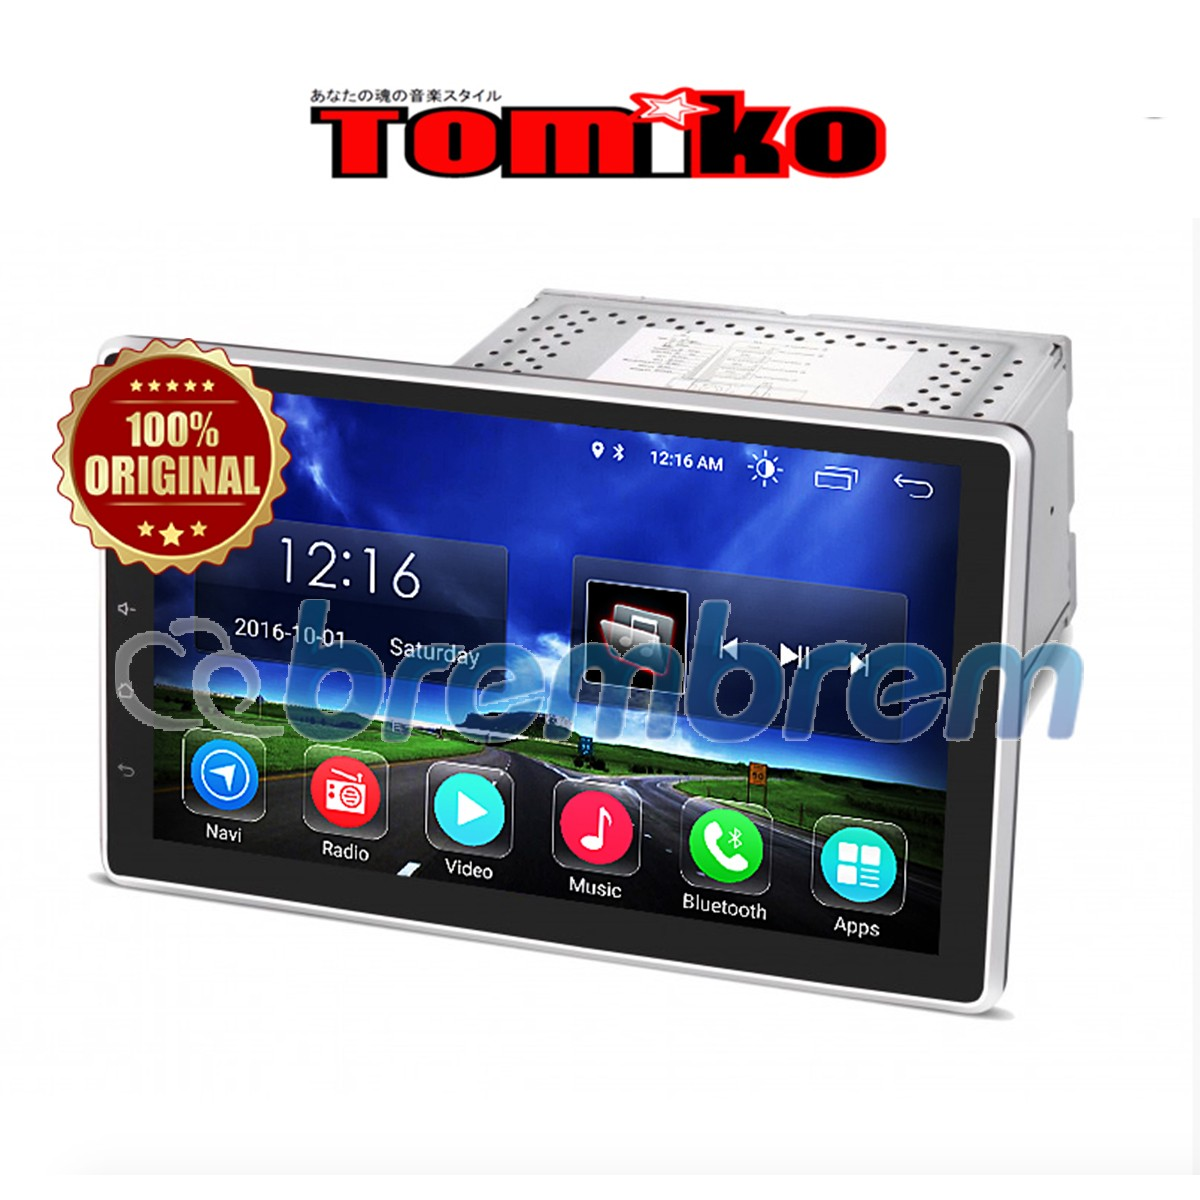 TOMIKO ANDROID 4G LTE 10 INCH DD 1055 L - HEADUNIT 2 DIN